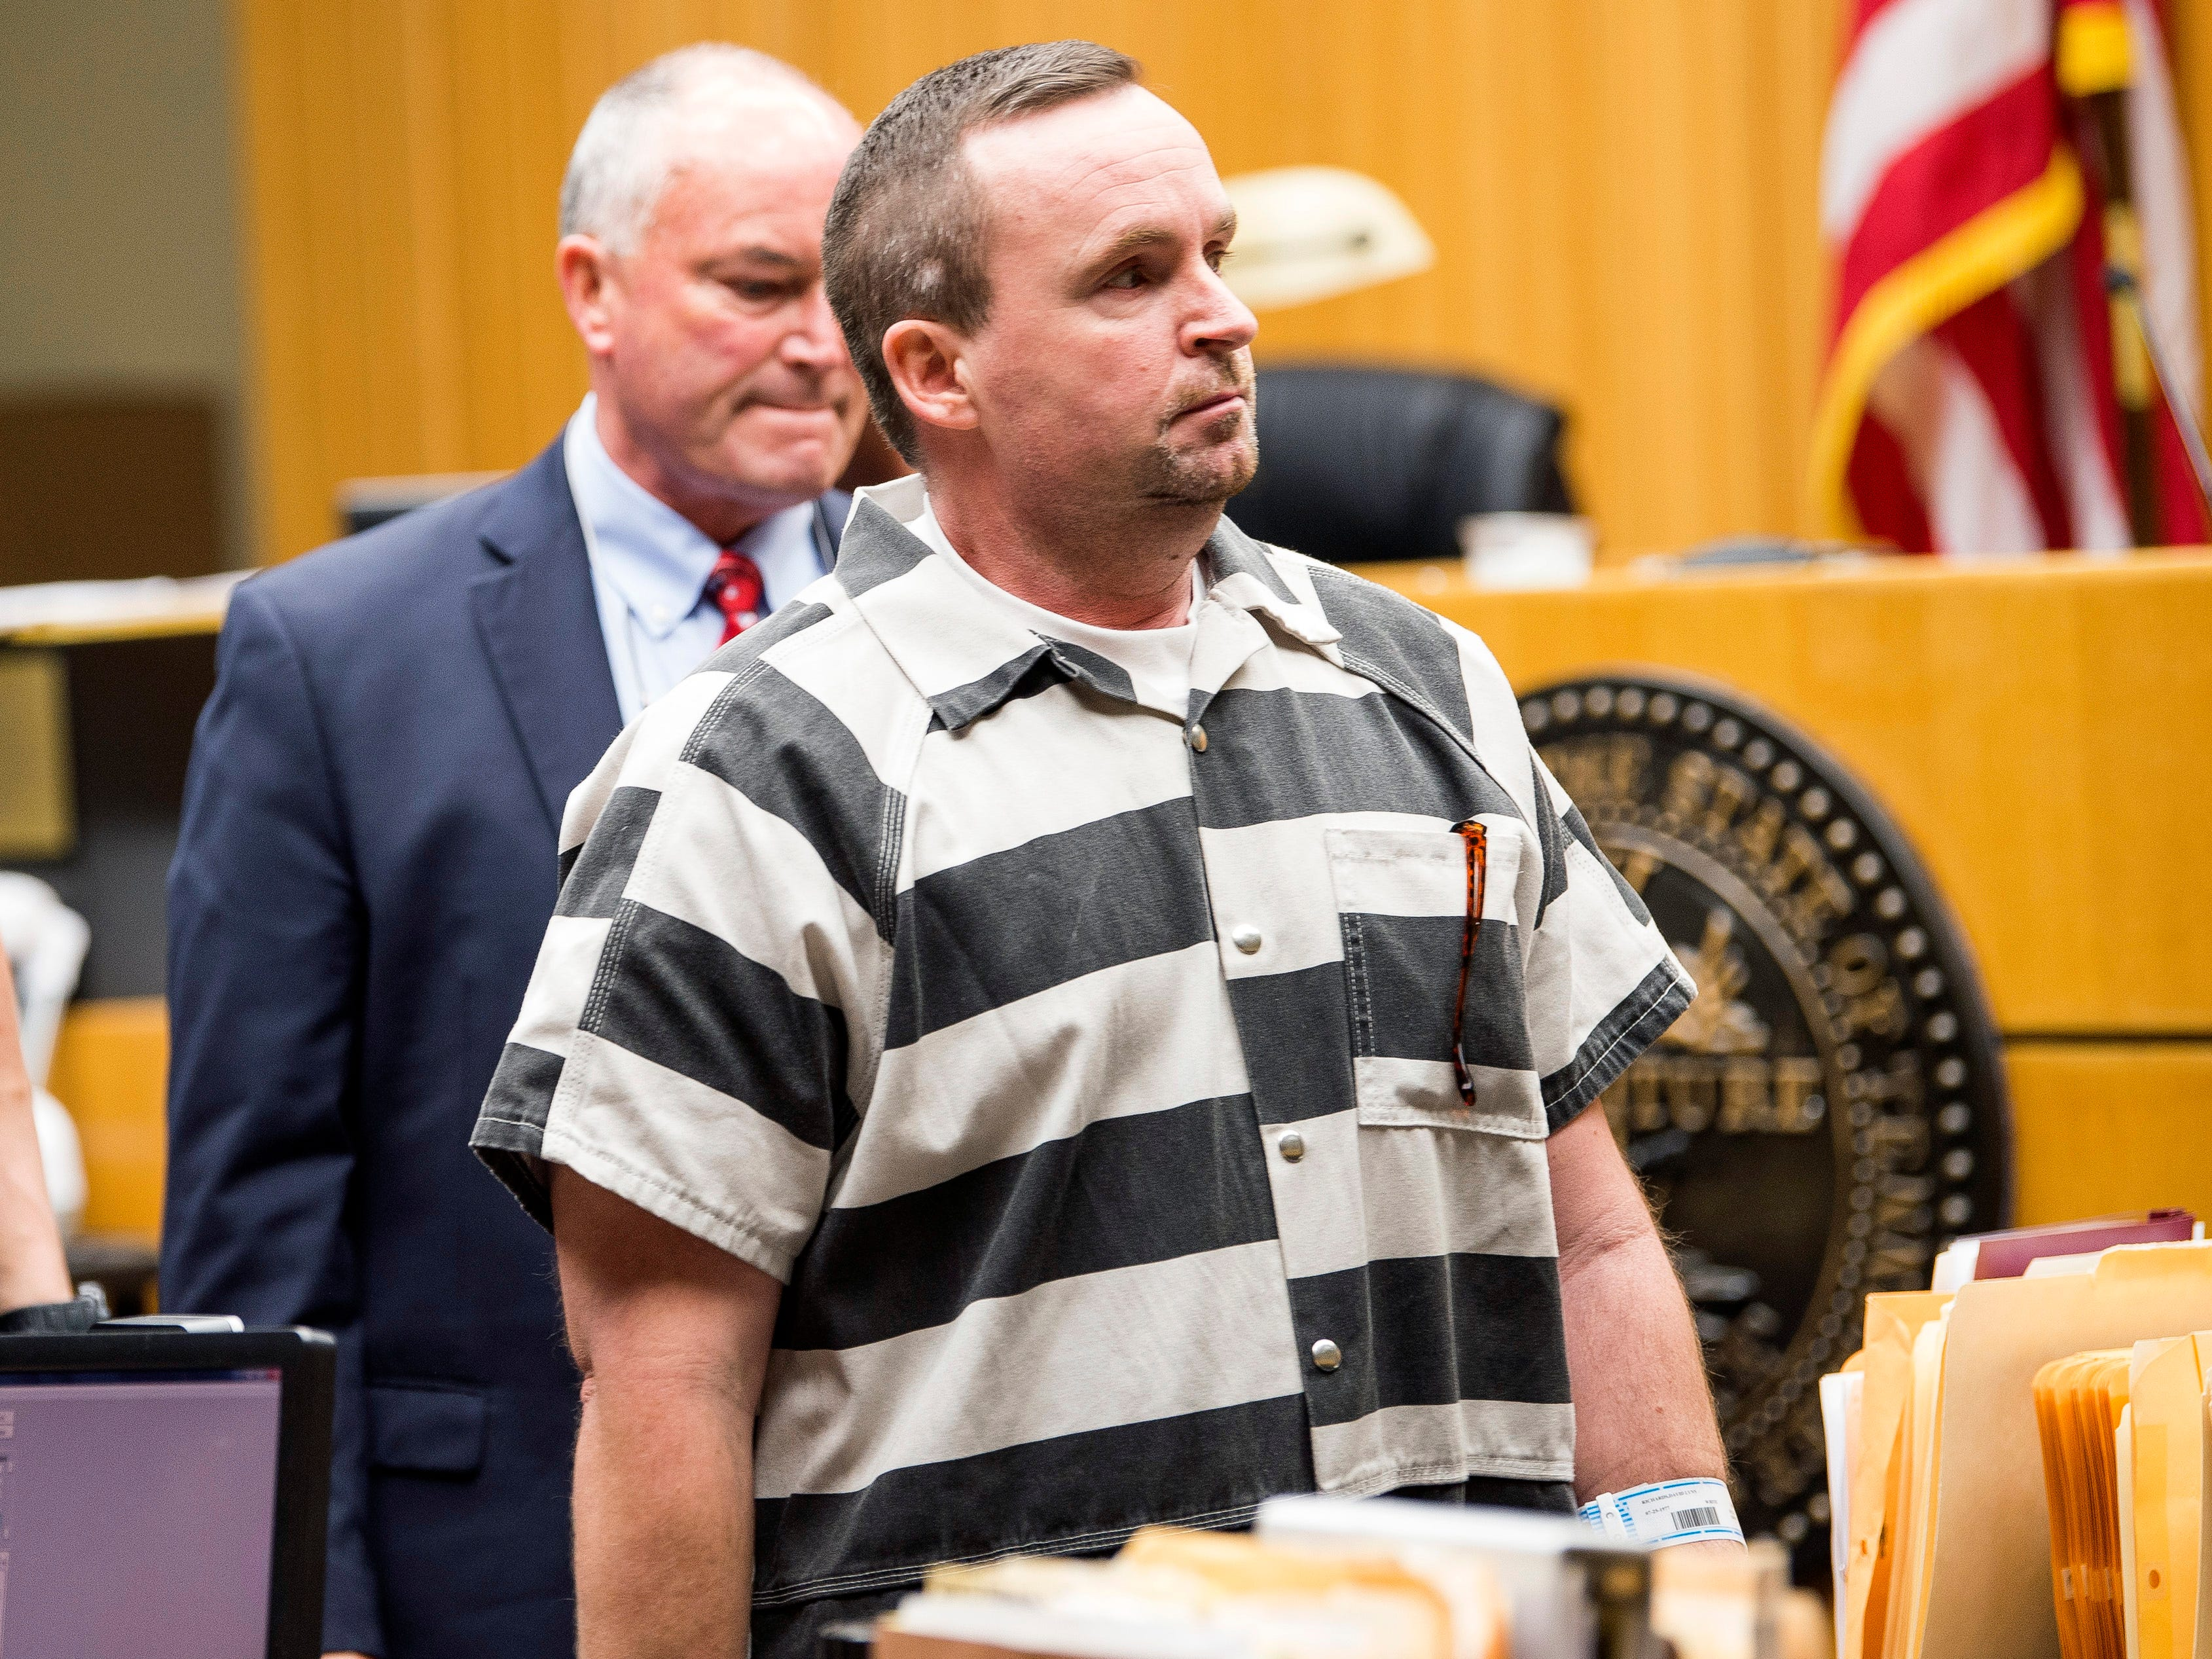 David Lynn Richards leaves the courtroom following his sentencing hearing in Knox County Criminal Court on Thursday, May 9, 2019.